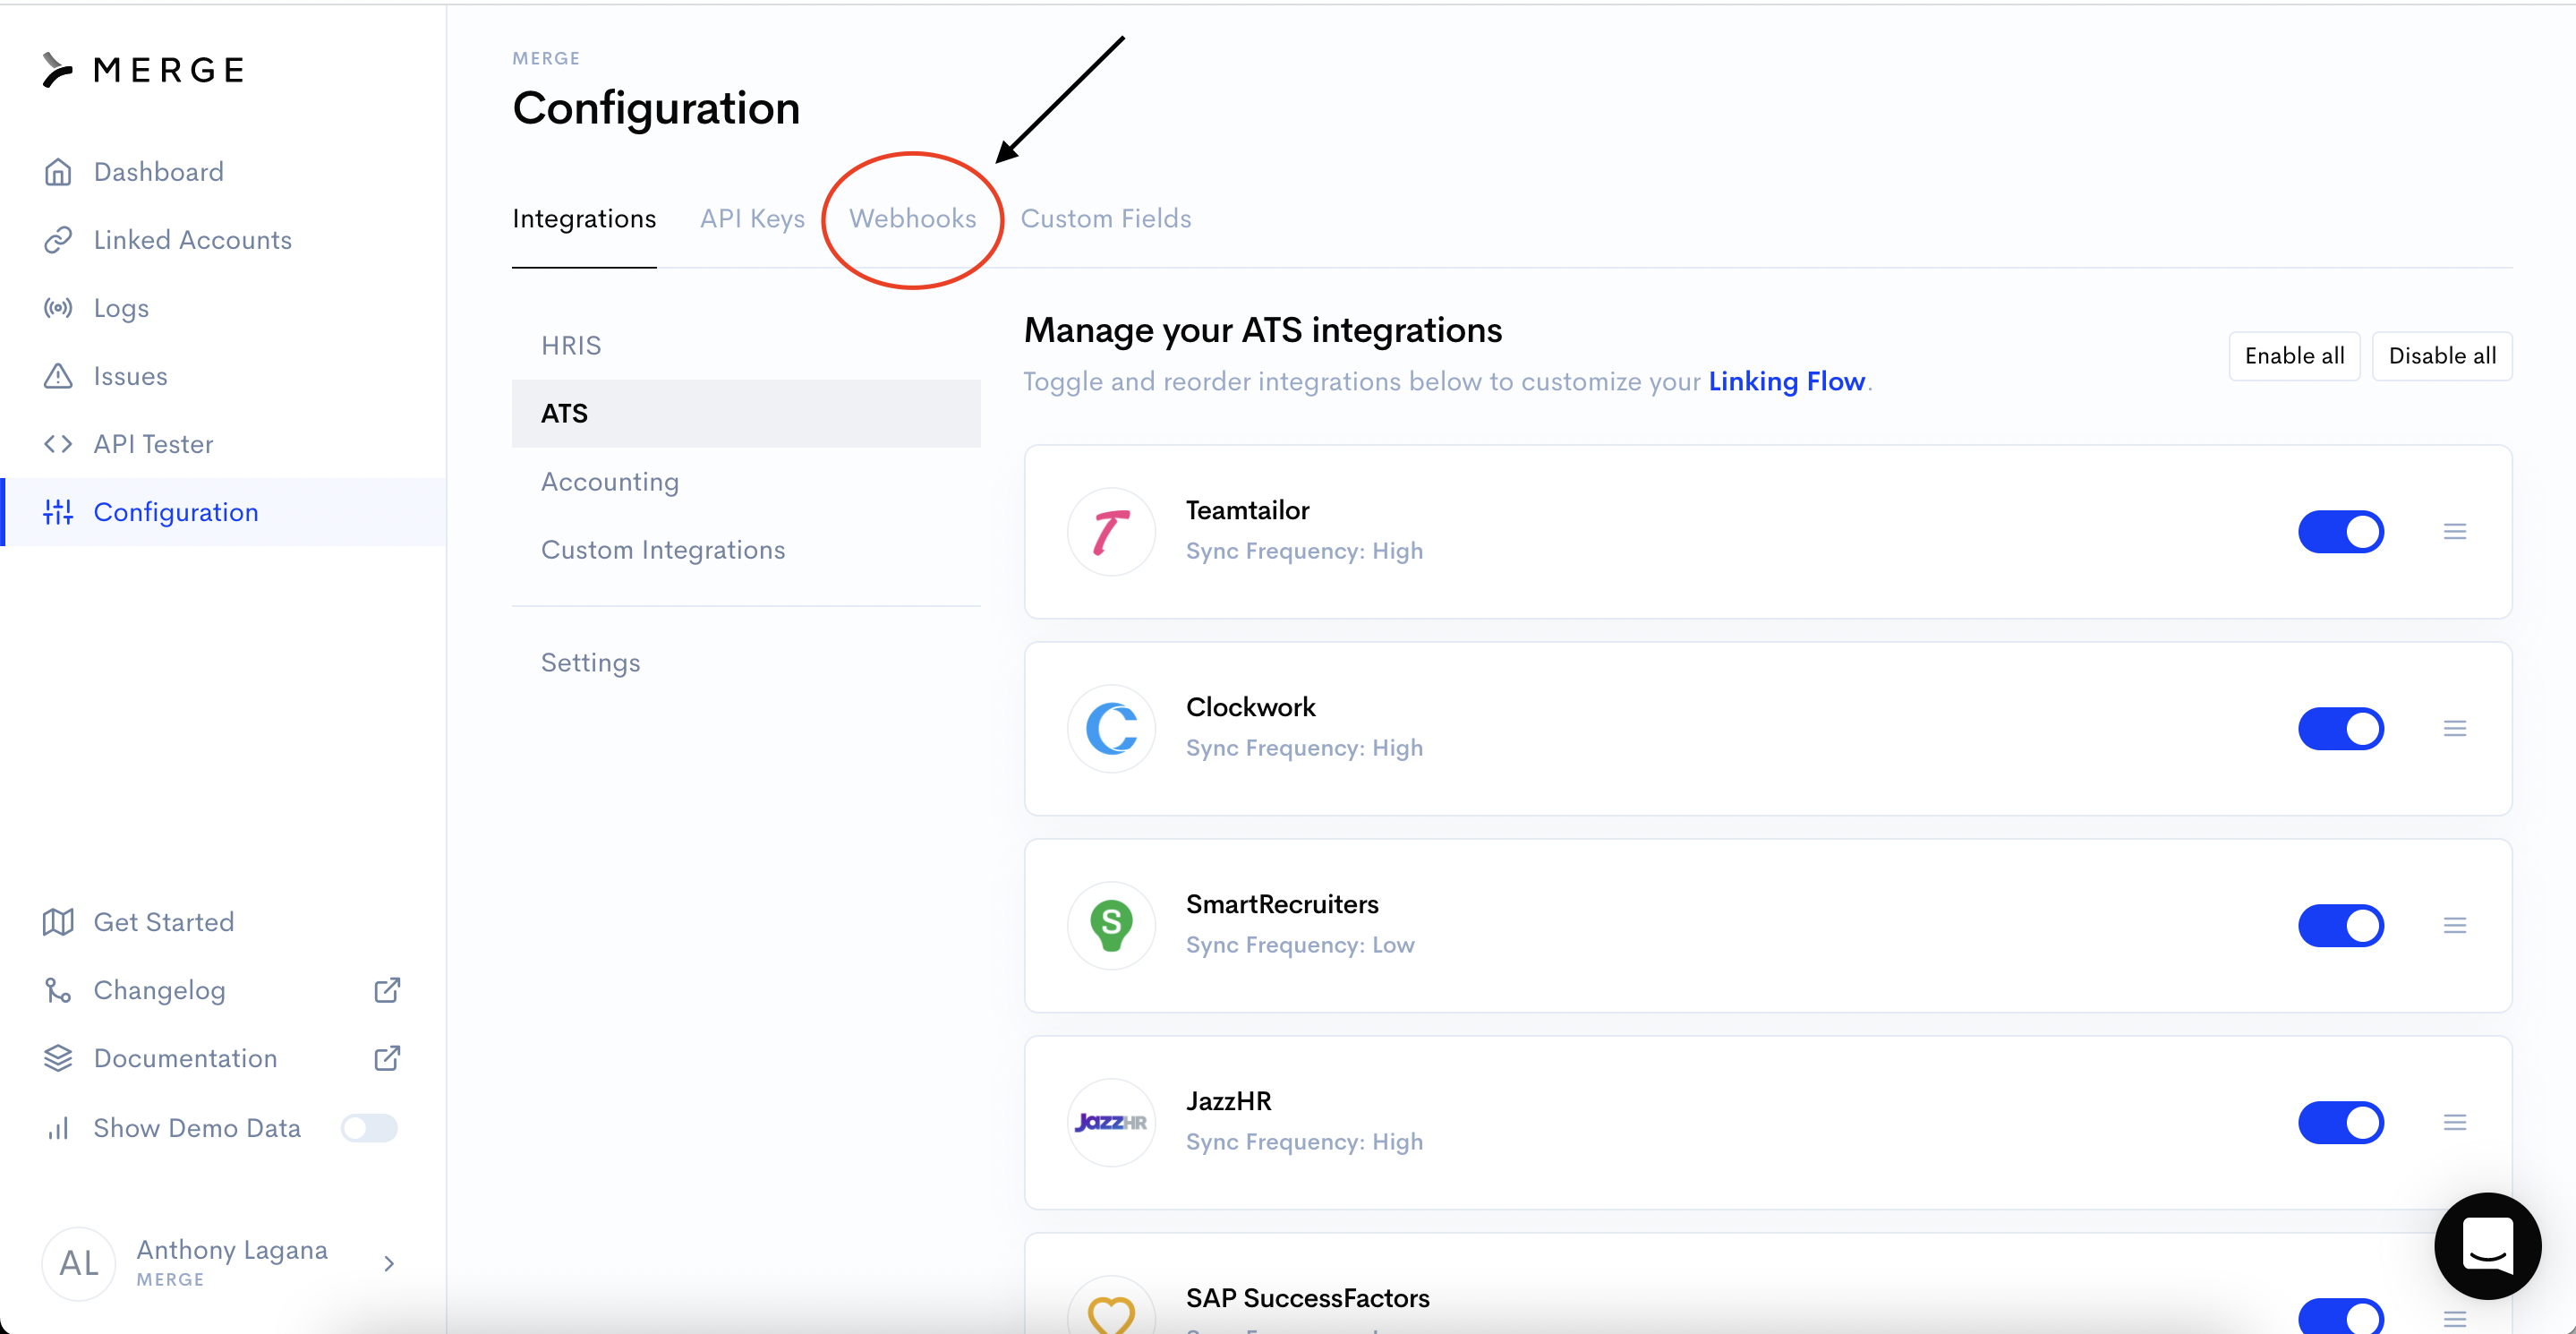 Merge dashboard showing arrow pointing to Webhooks